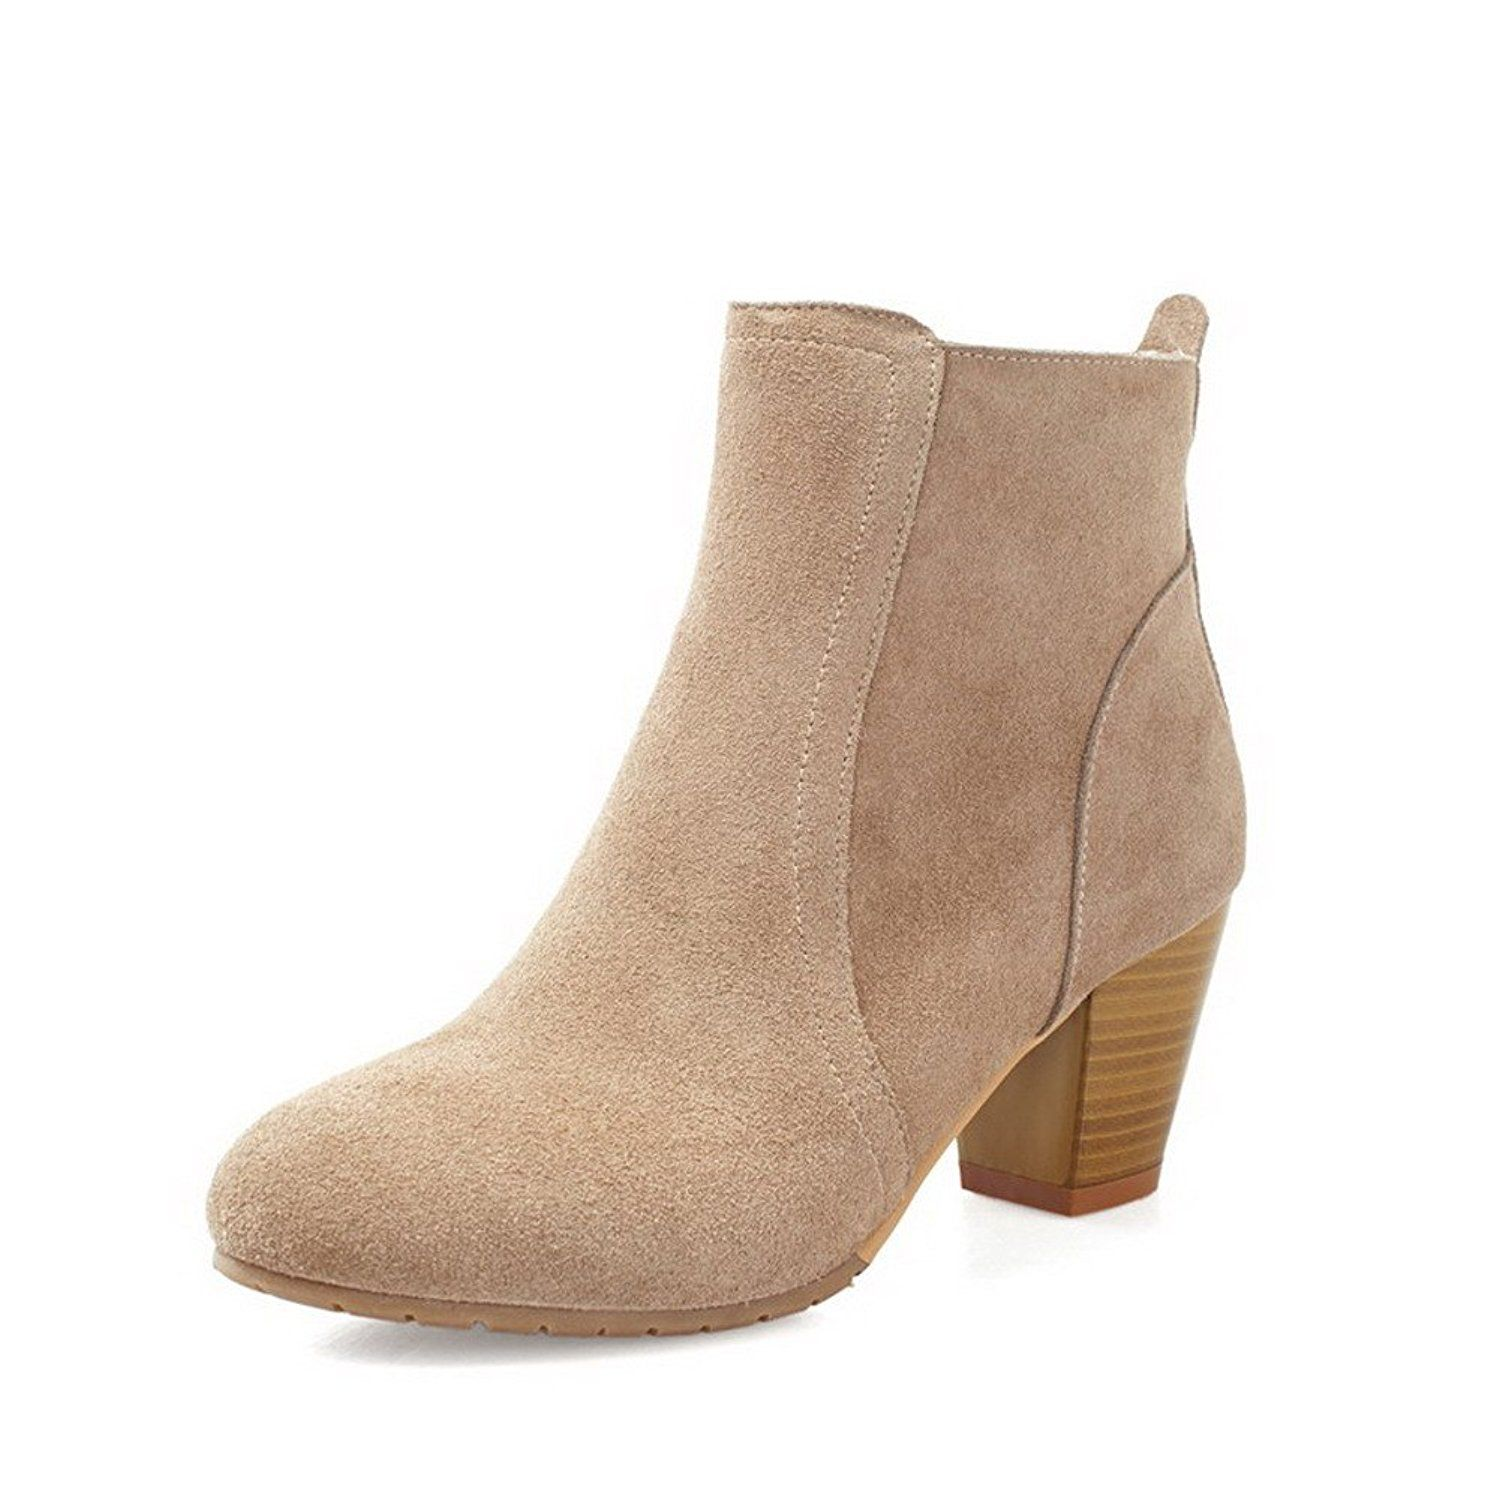 Women's Imitated Suede Frosted Round Closed Toe Low-top Kitten-heels Boots